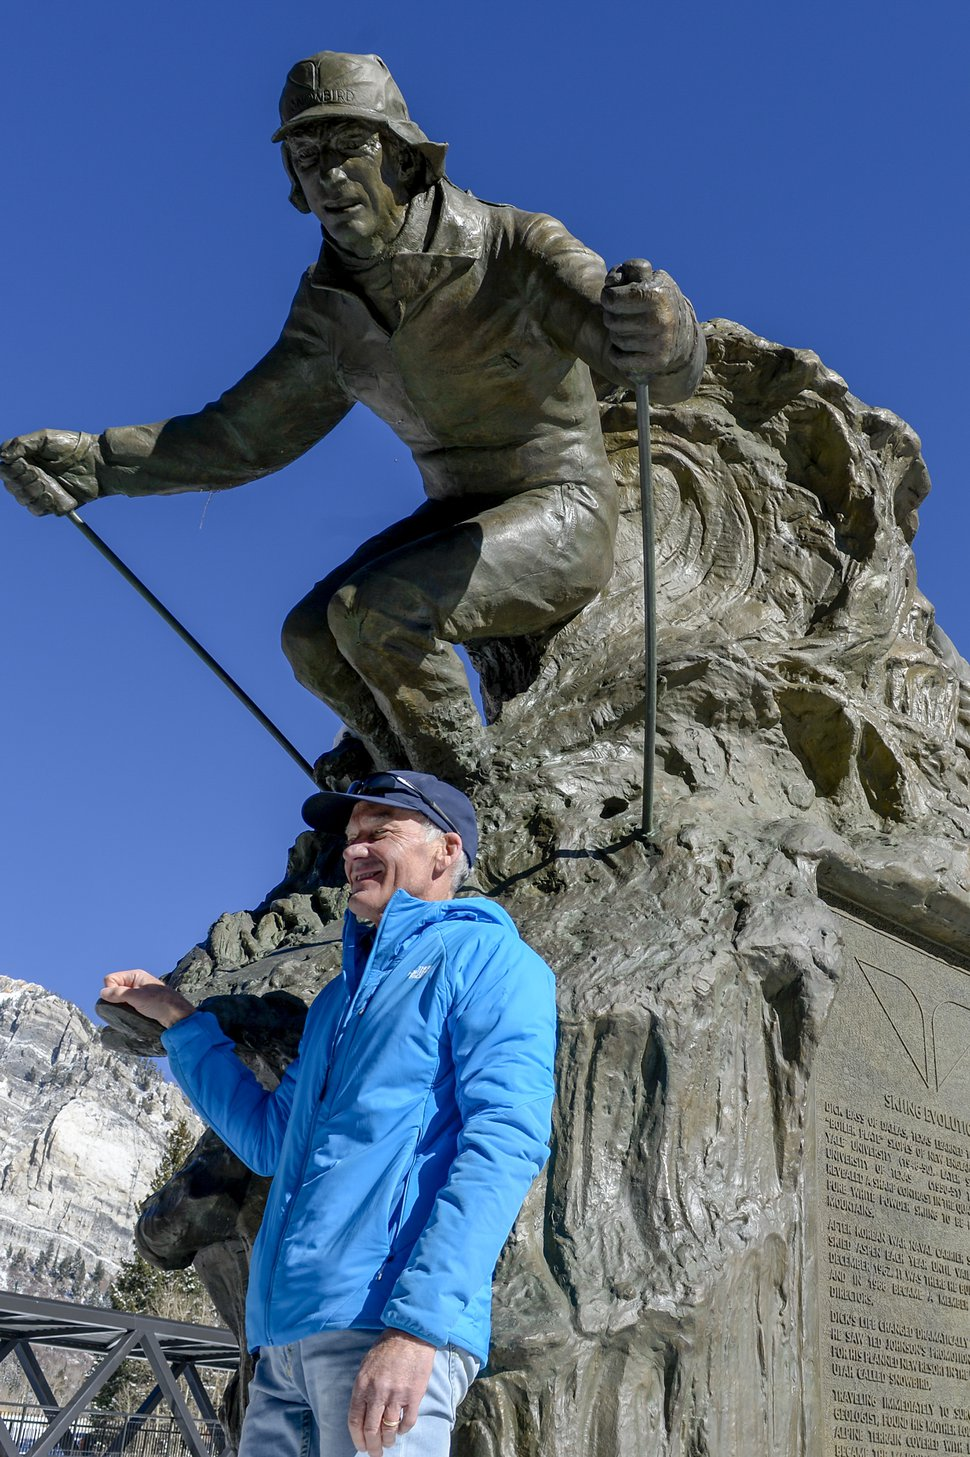 Leah Hogsten | The Salt Lake Tribune Bob Bonar, who worked alongside the late Snowbird Ski and Summer Resort owner Dick Bass since before the resort opened in 1971, poses next to the recently placed bronze statue of Bass.